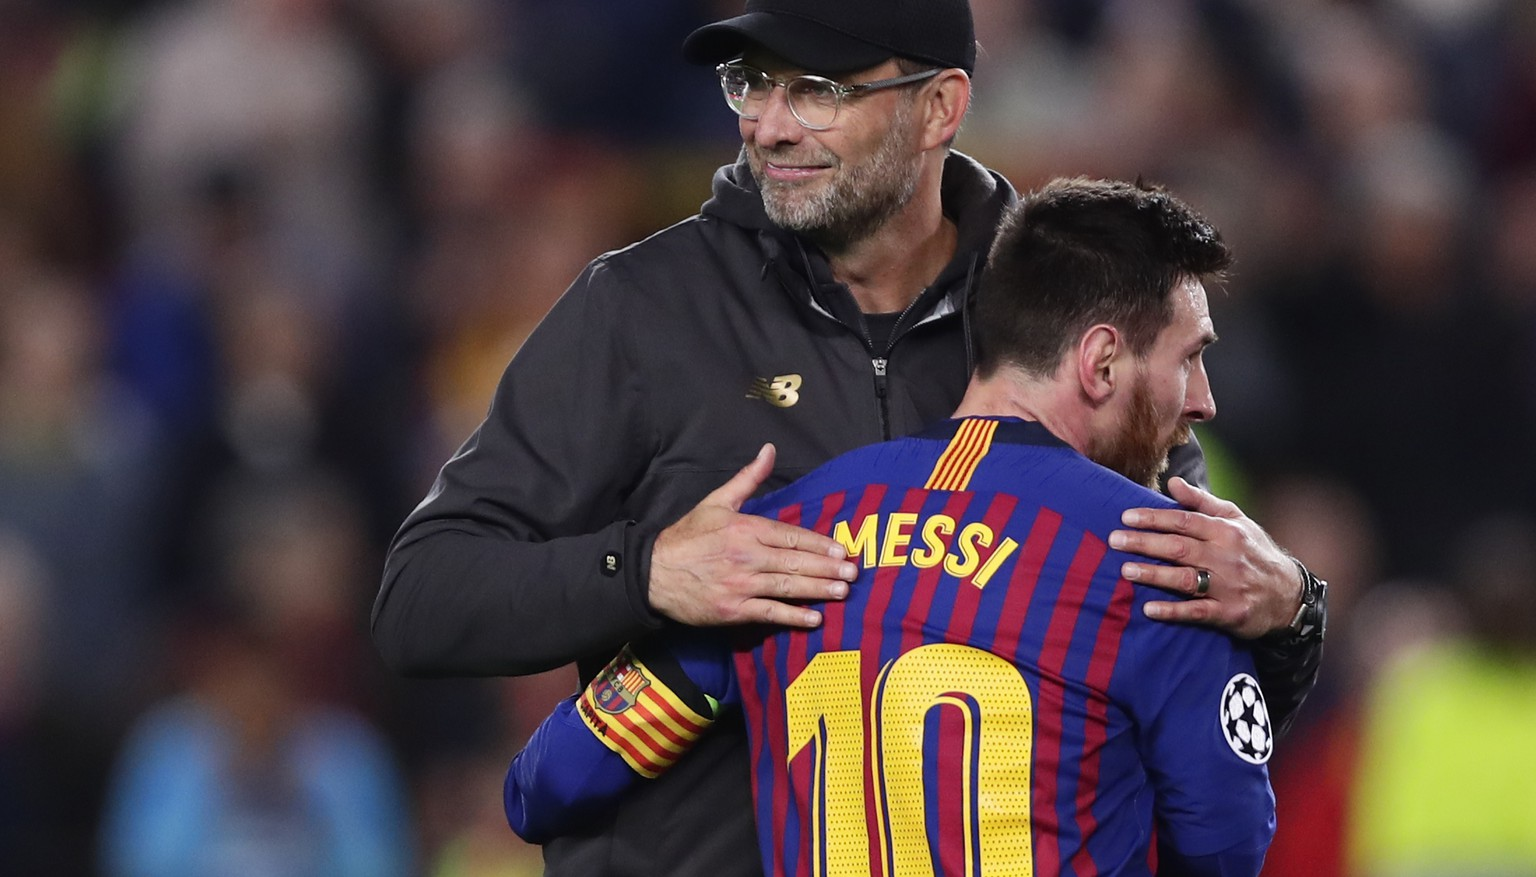 Barcelona's Lionel Messi, who scored two of the team's three goals, hugs Liverpool coach Juergen Klopp after the Champions League semifinal first leg soccer match between FC Barcelona and Liverpool at the Camp Nou stadium in Barcelona, Spain, Wednesday, May 1, 2019. (AP Photo/Manu Fernandez)